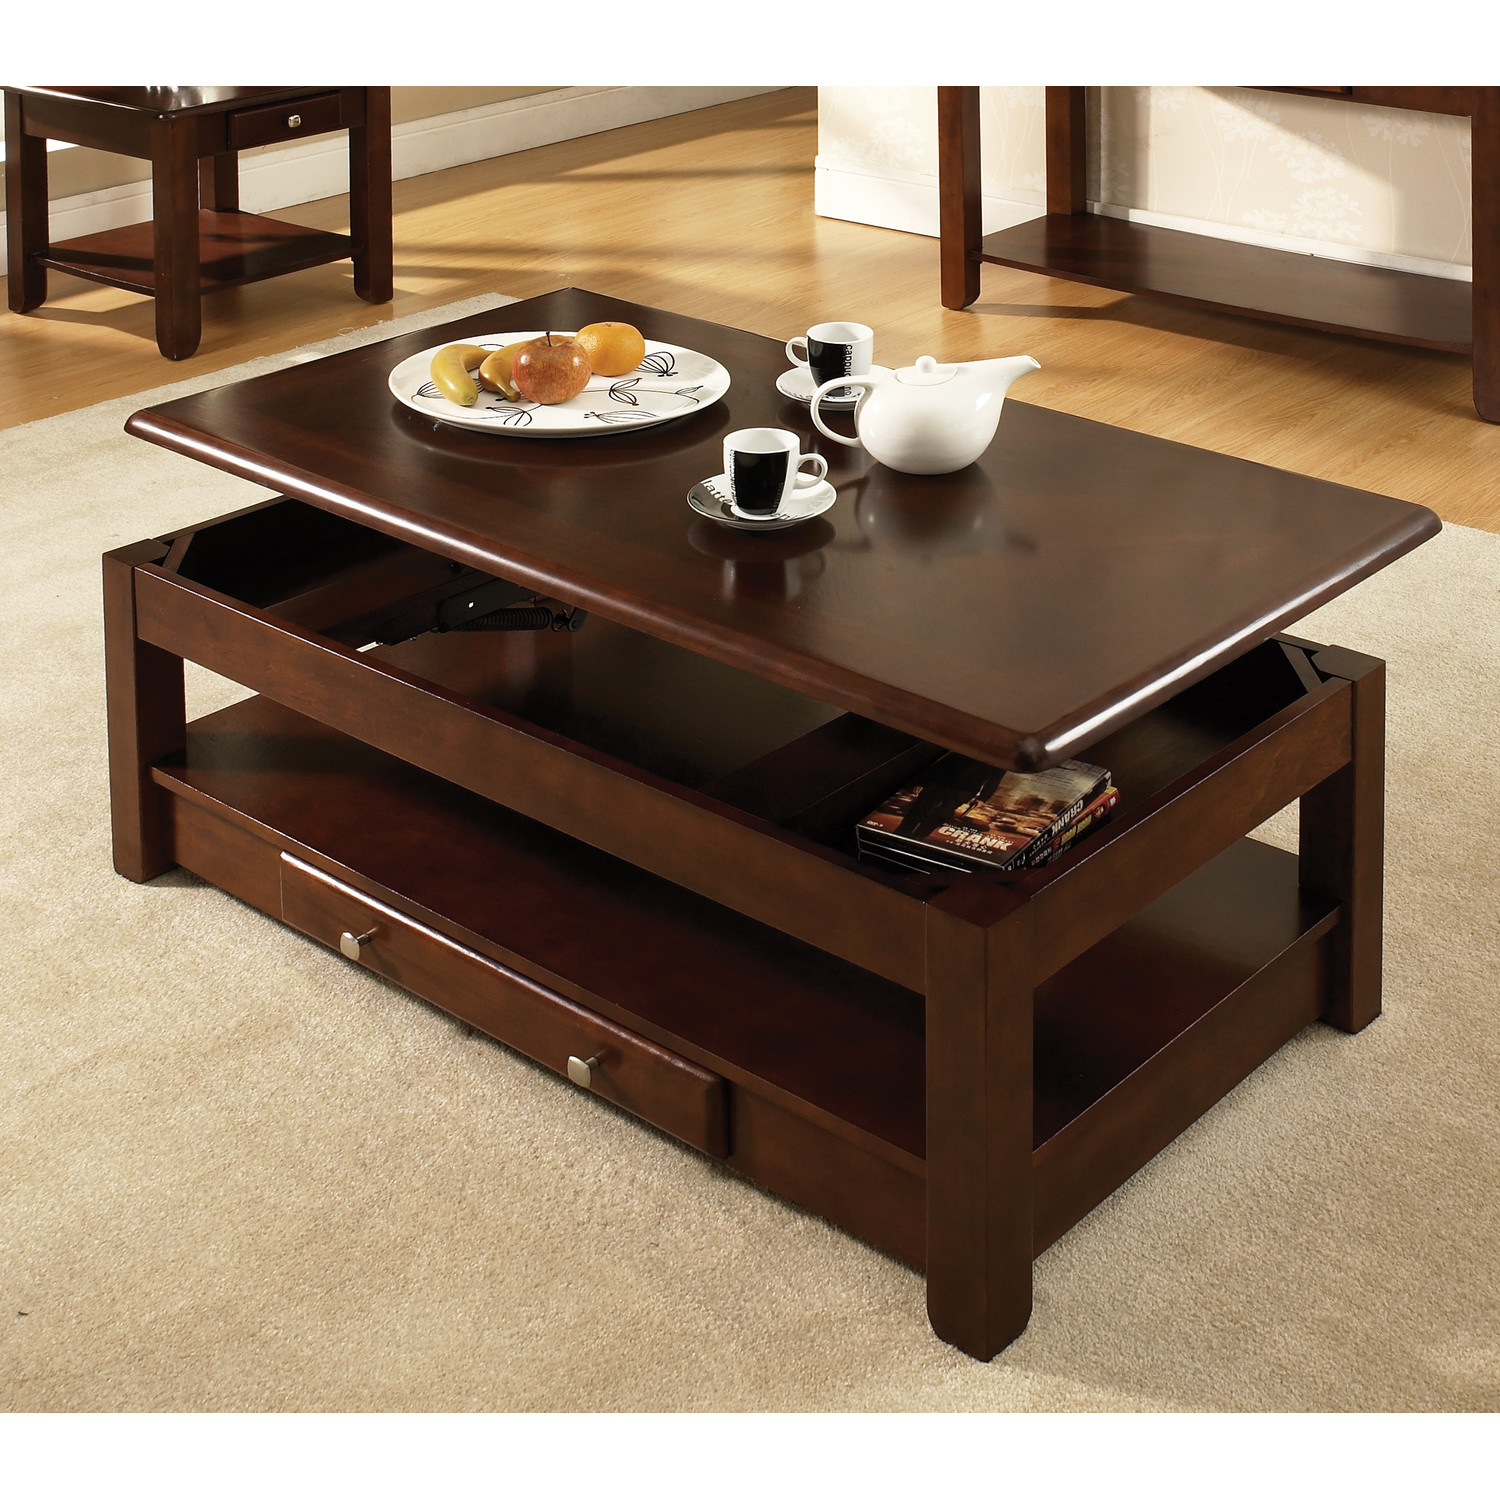 Square Shape Wood Dark Brown On Carpet With Grey Color Steve Silver Coffee Table Sets Nelson Lift Top Coffee Table (Image 7 of 10)